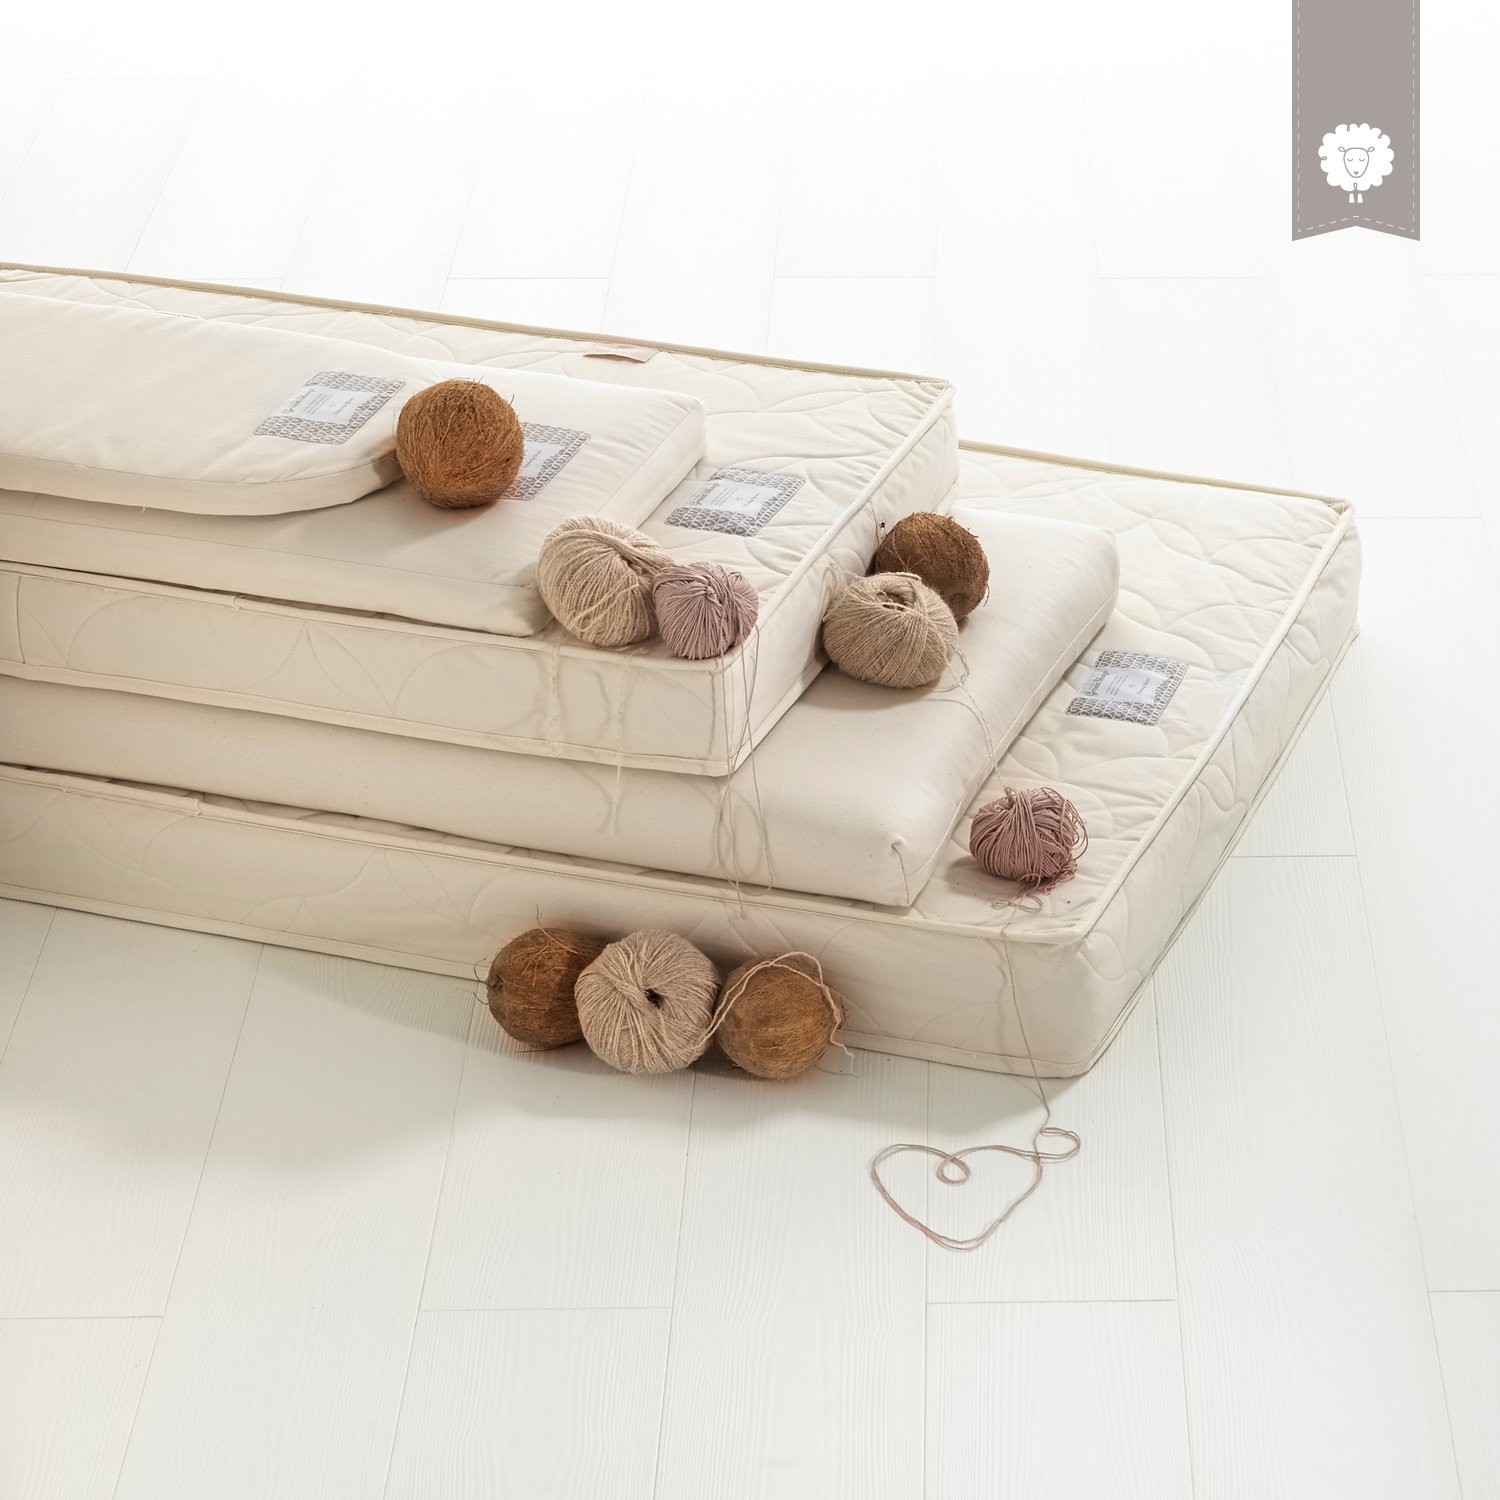 The Little Green Sheep Natural colchón de capazo para Joolz Geo: Amazon.es: Bebé